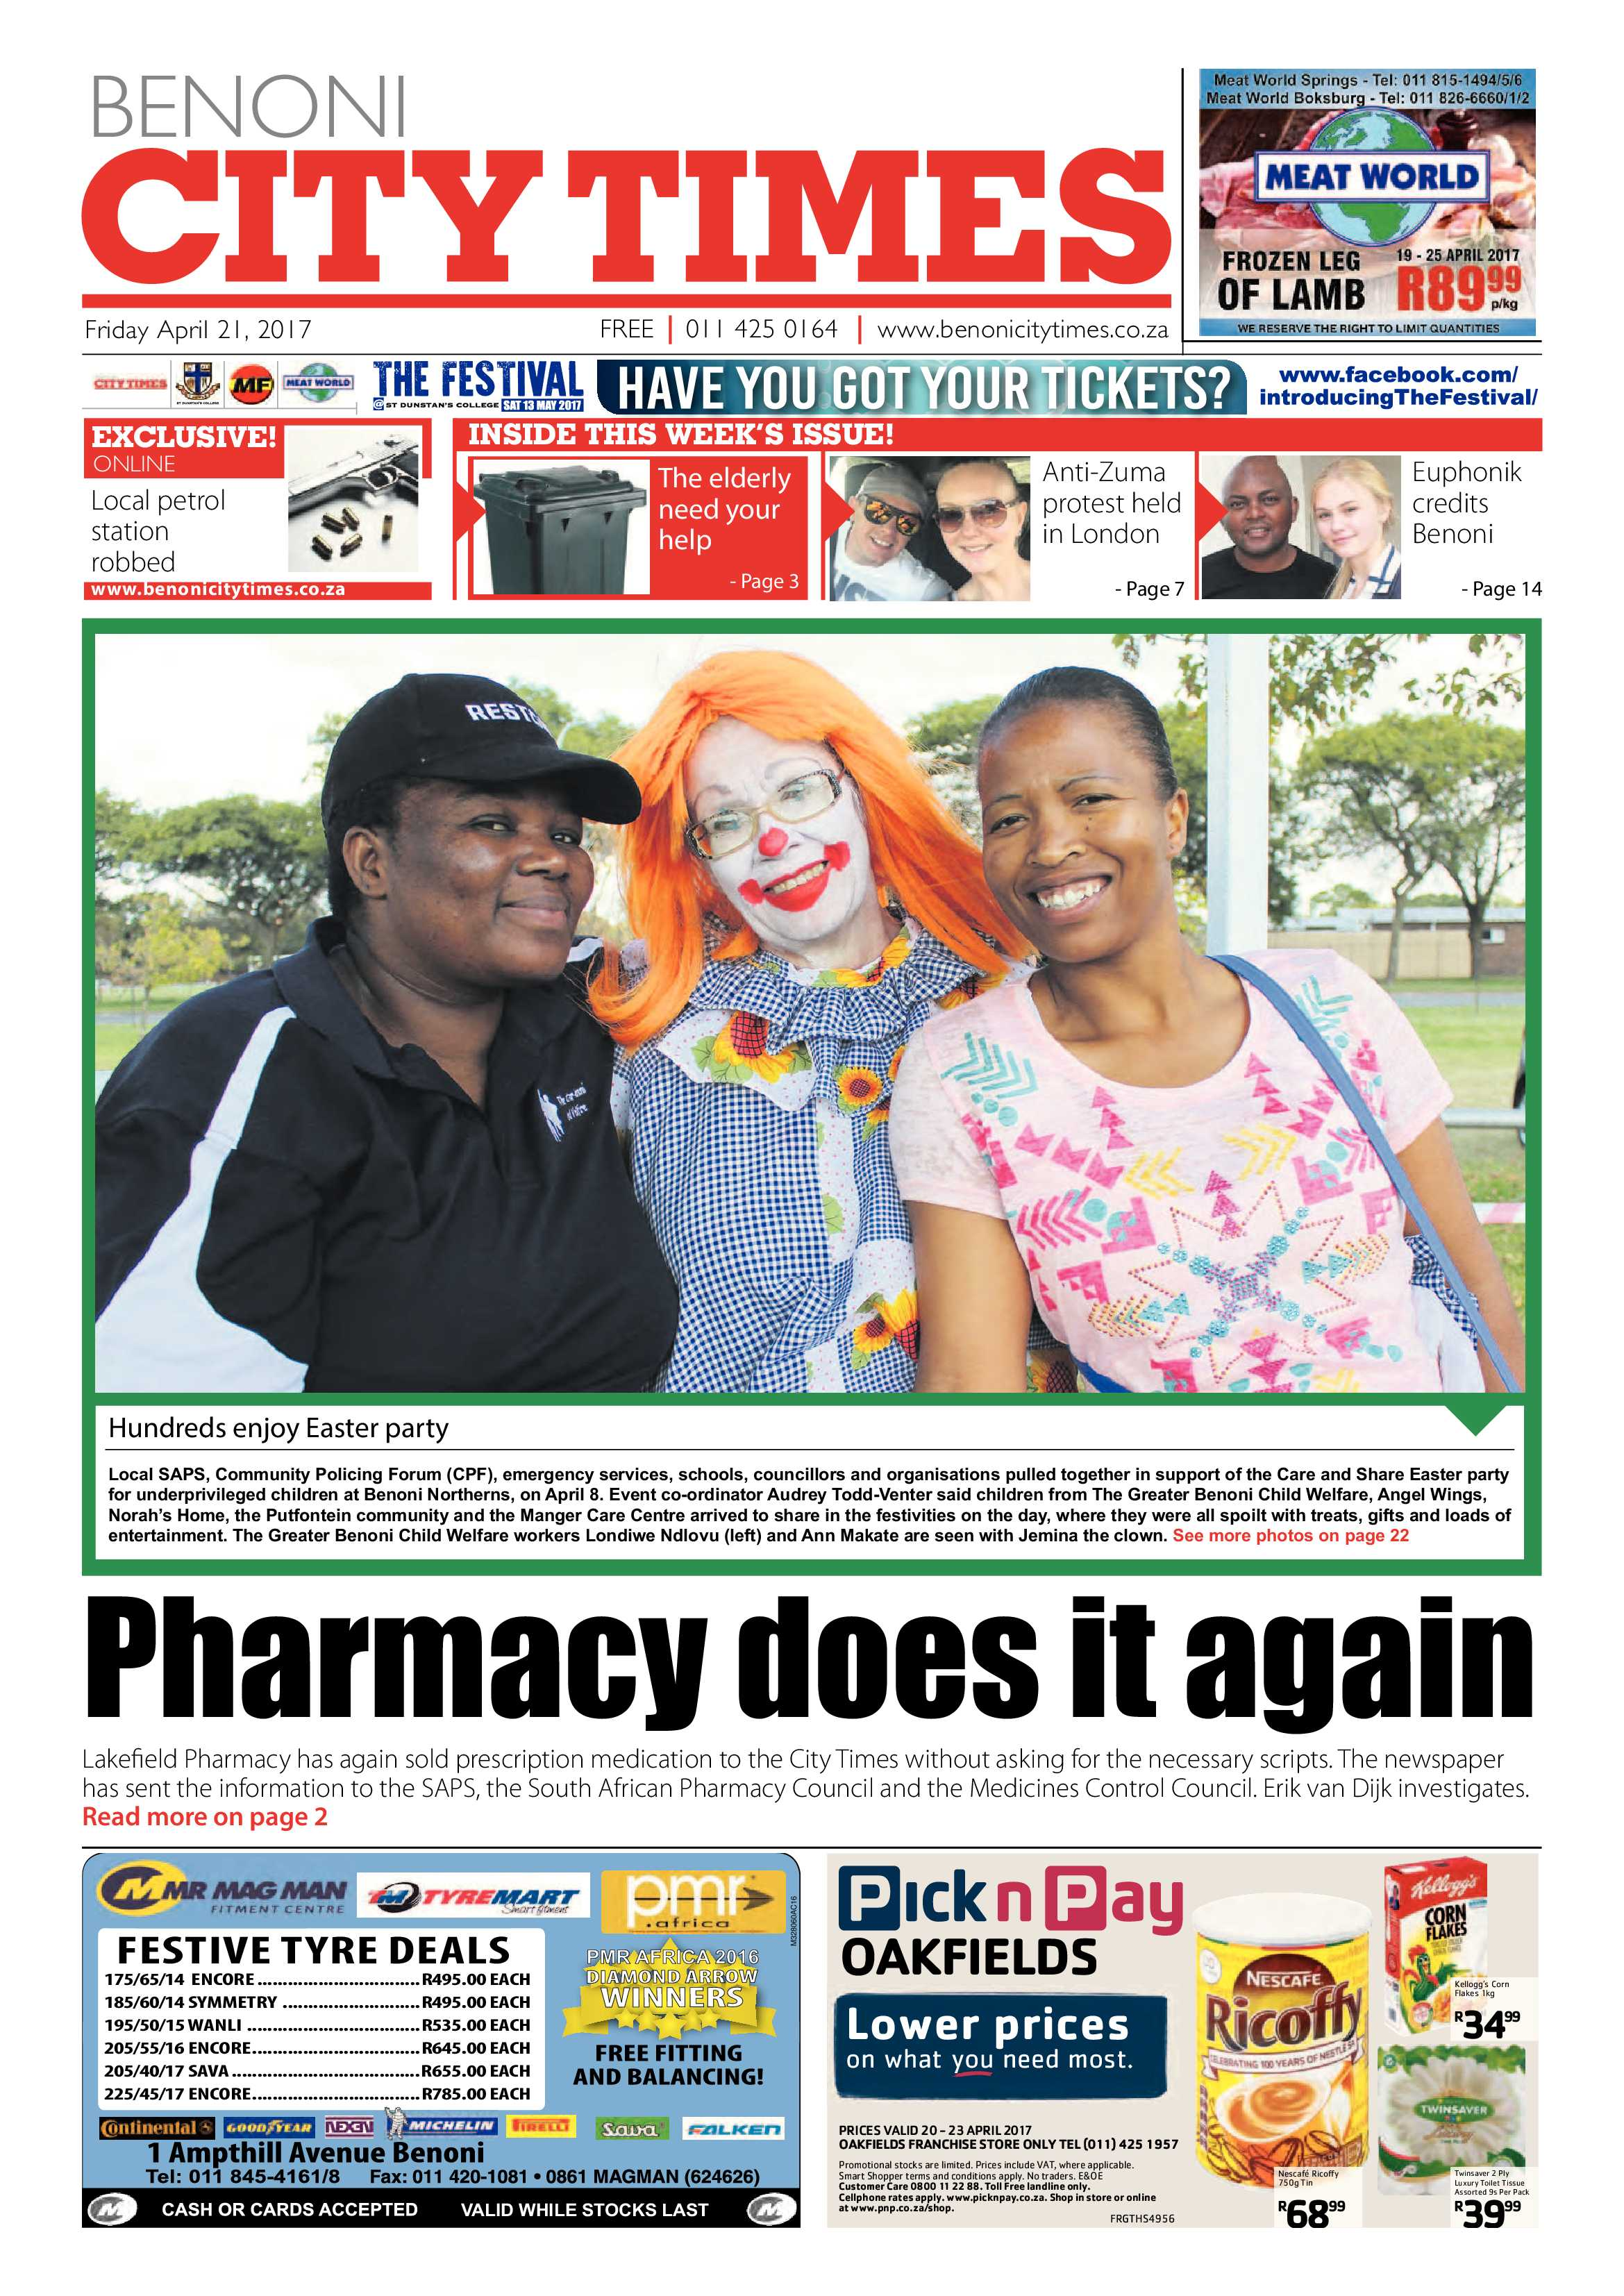 benoni-city-times-20-april-2017-epapers-page-1